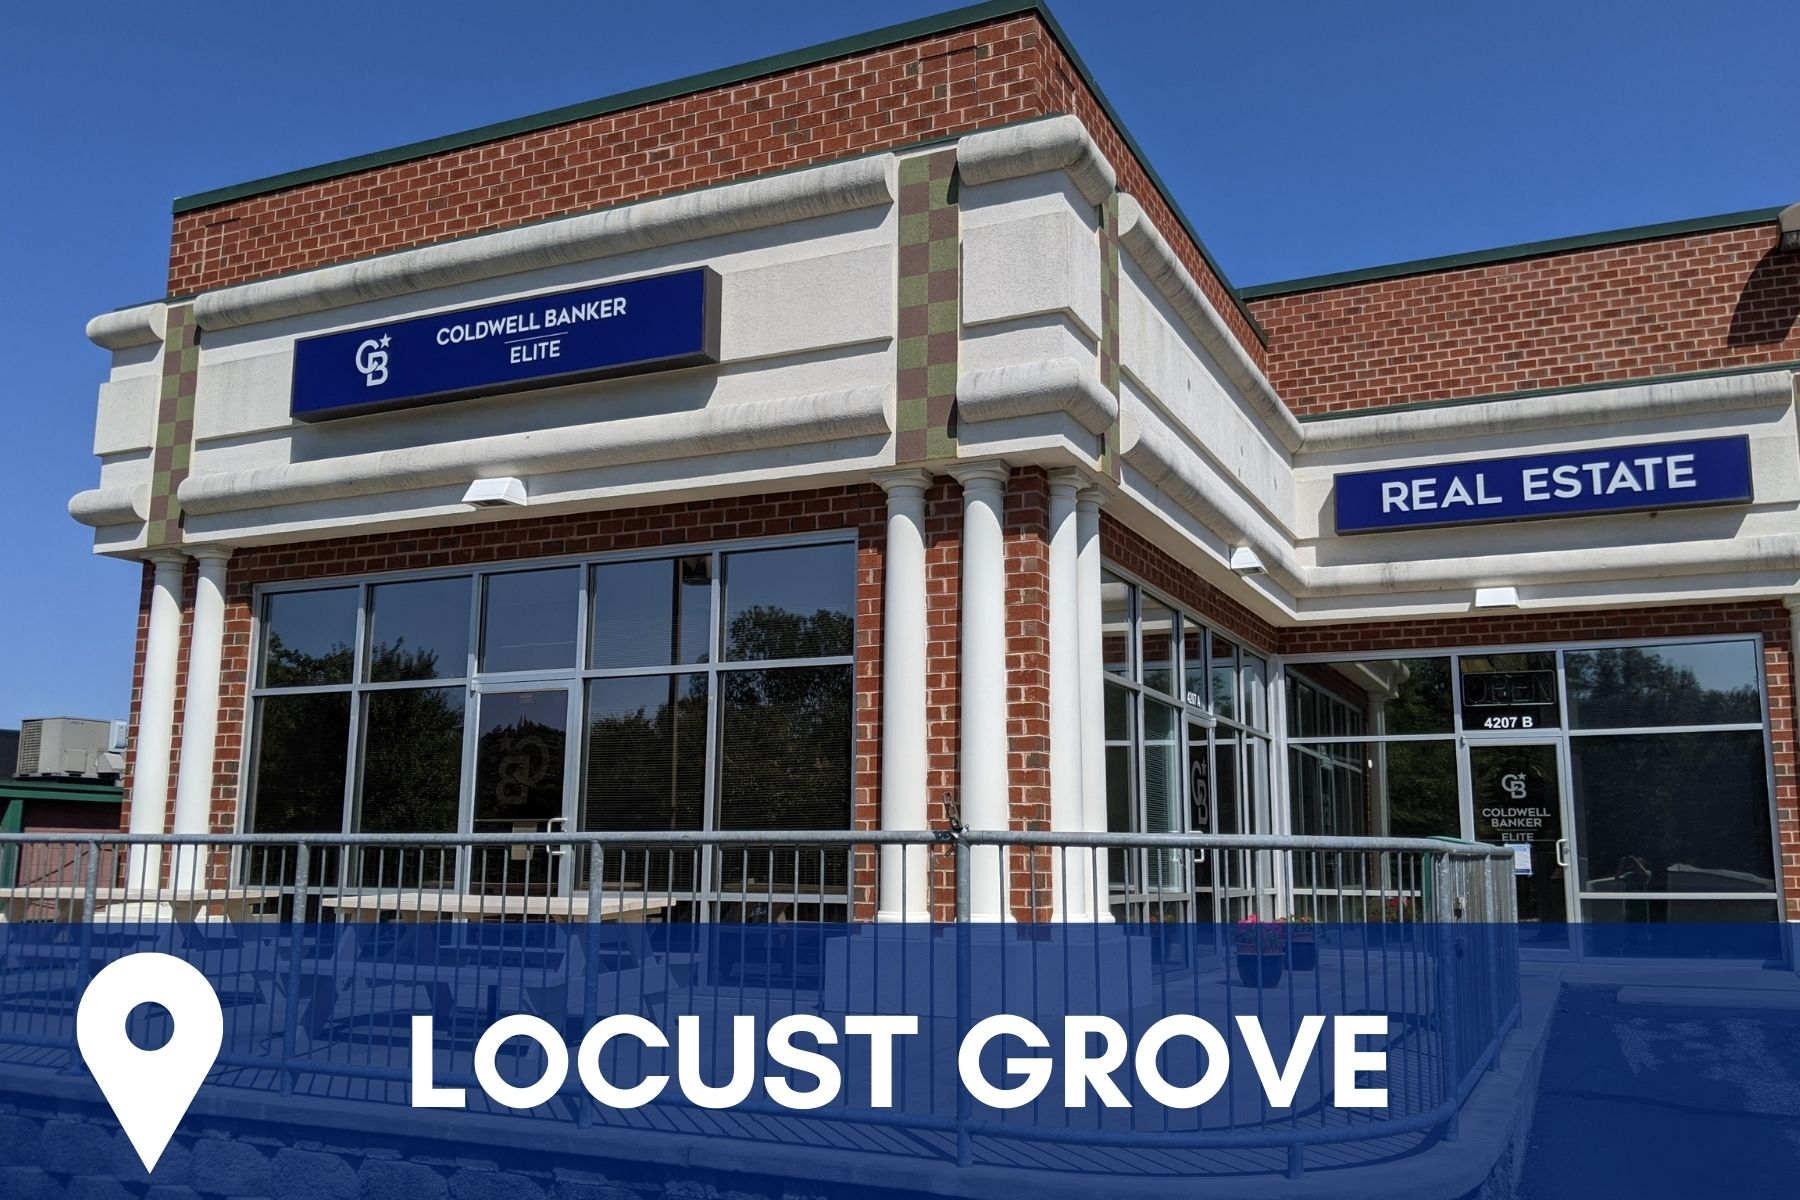 locust grove lake of the woods real estate realtor real estate agents